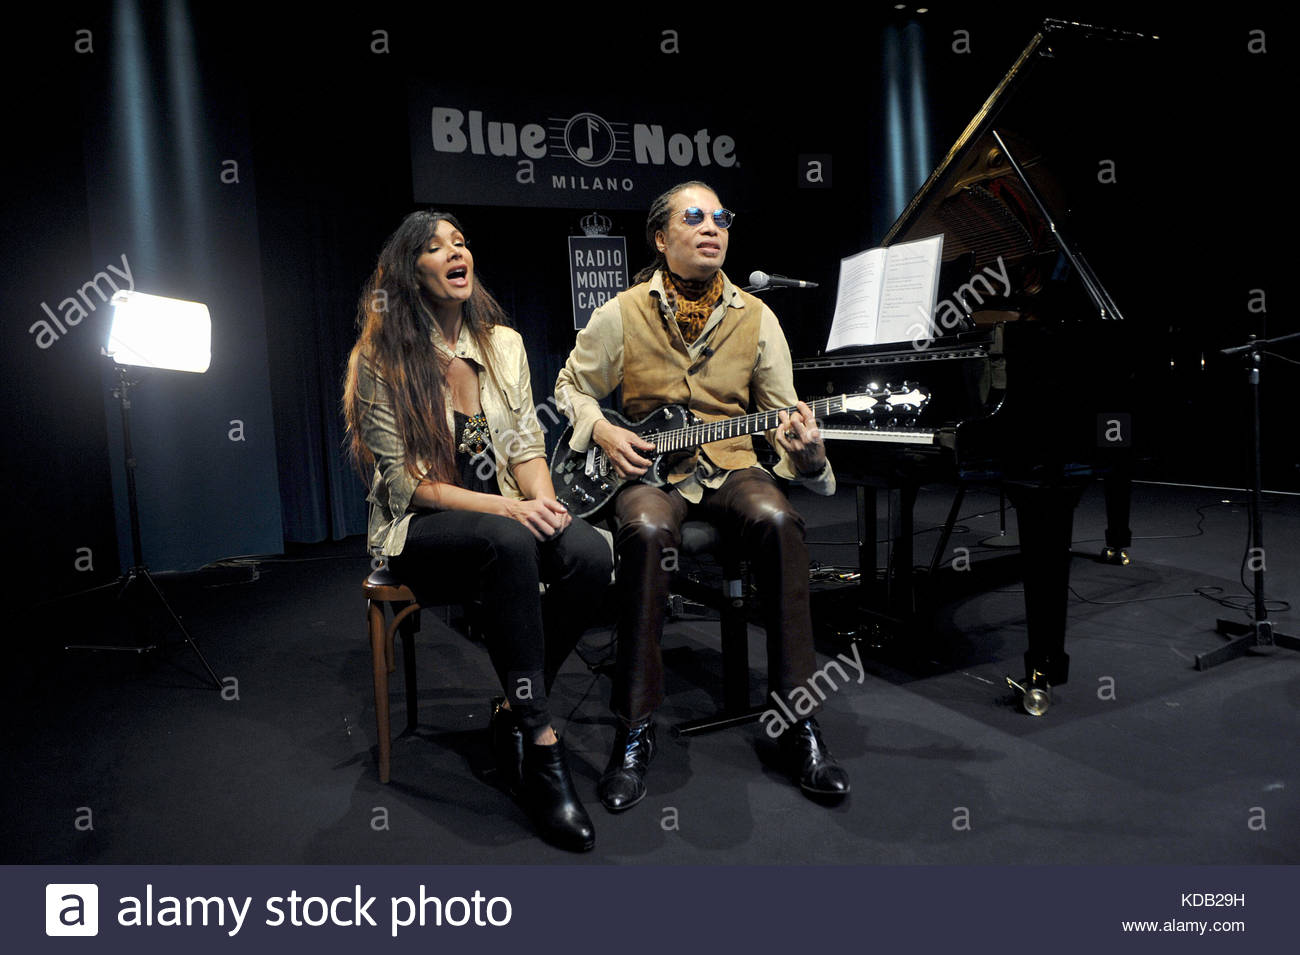 Sananda Maitreya Formerly Known As Terence Trent D Arby And Luisa Stock Photo Alamy